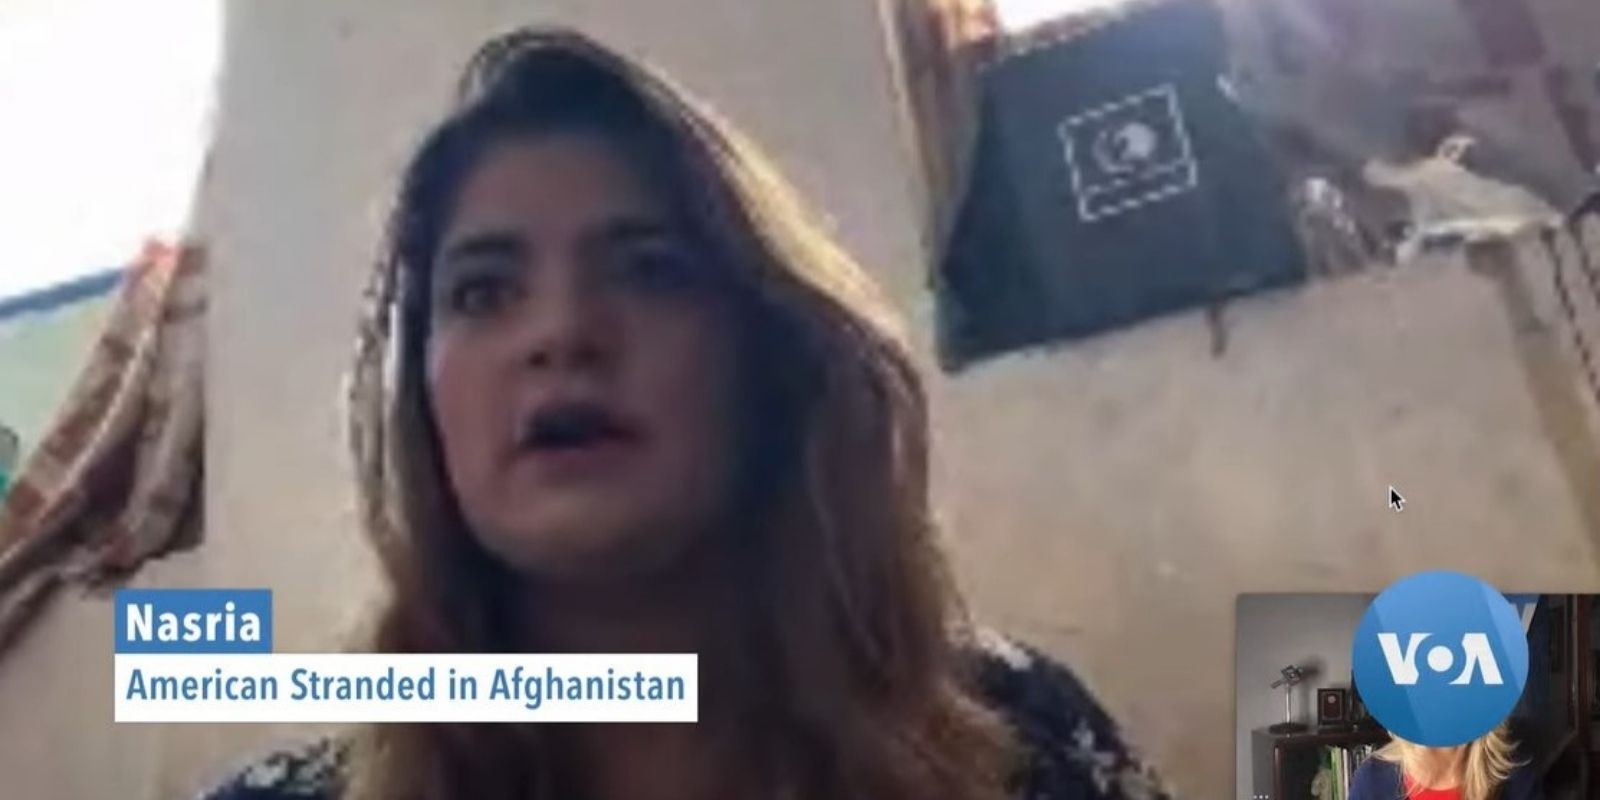 WATCH: Pregnant American woman stranded in Afghanistan says she fears for her life